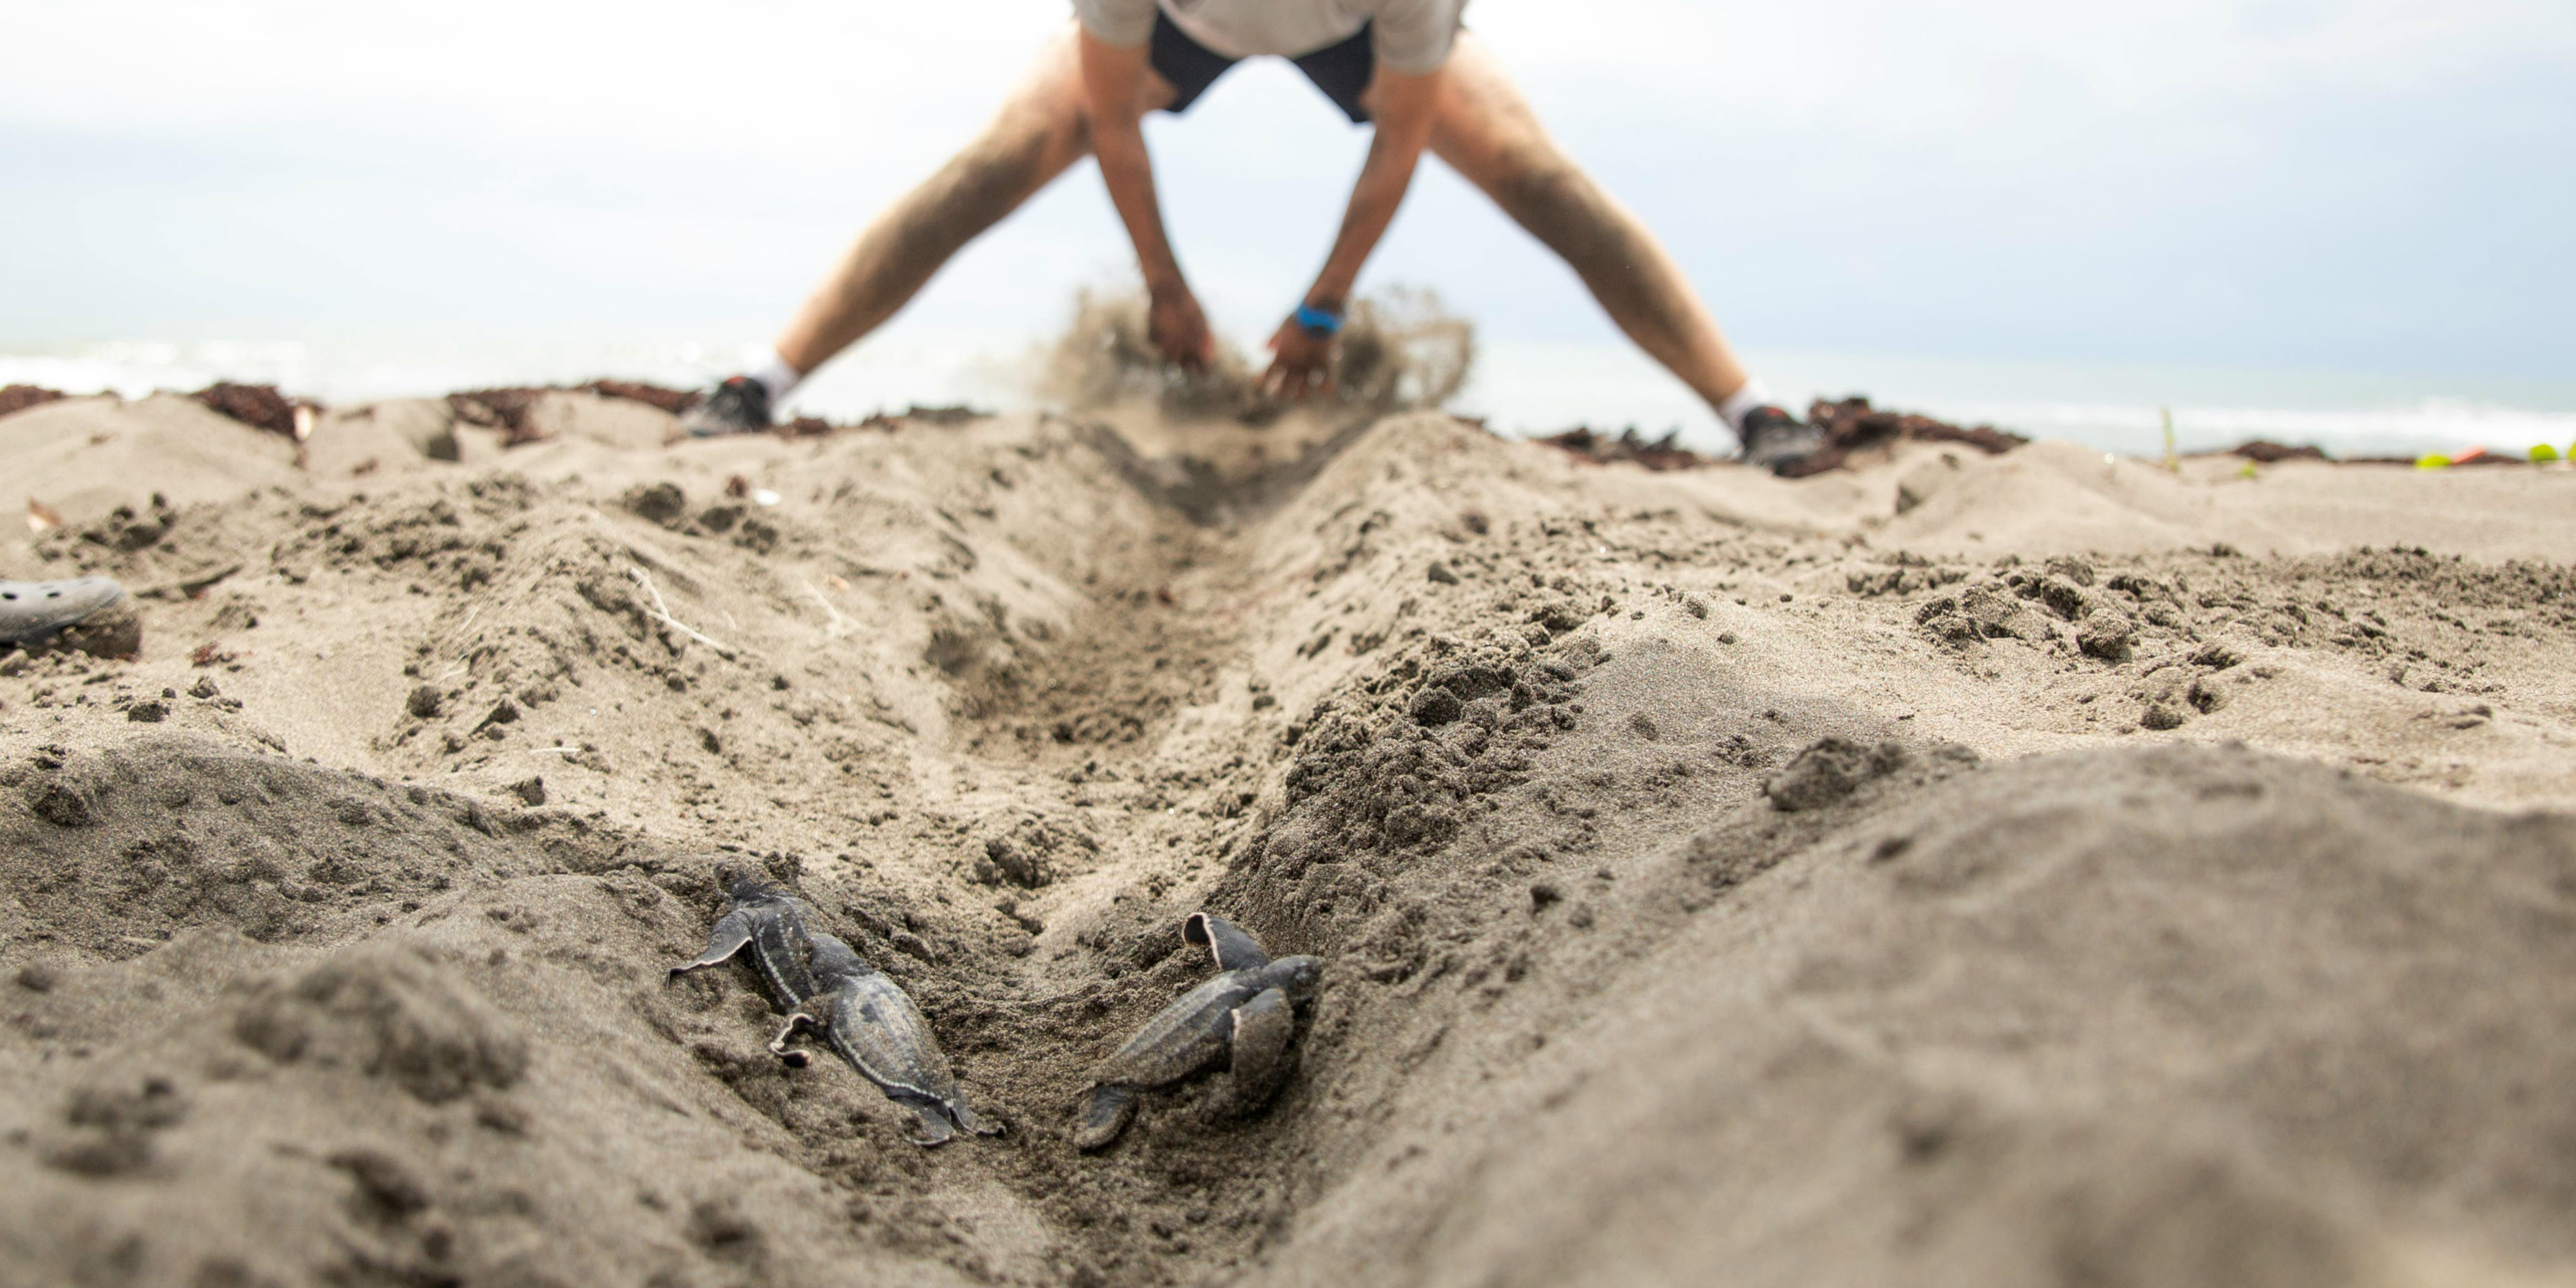 While volunteering with Costa Rica sea turtles, a GVI volunteer digs out a trench to help sea turtles hatchings make it to the water safely.